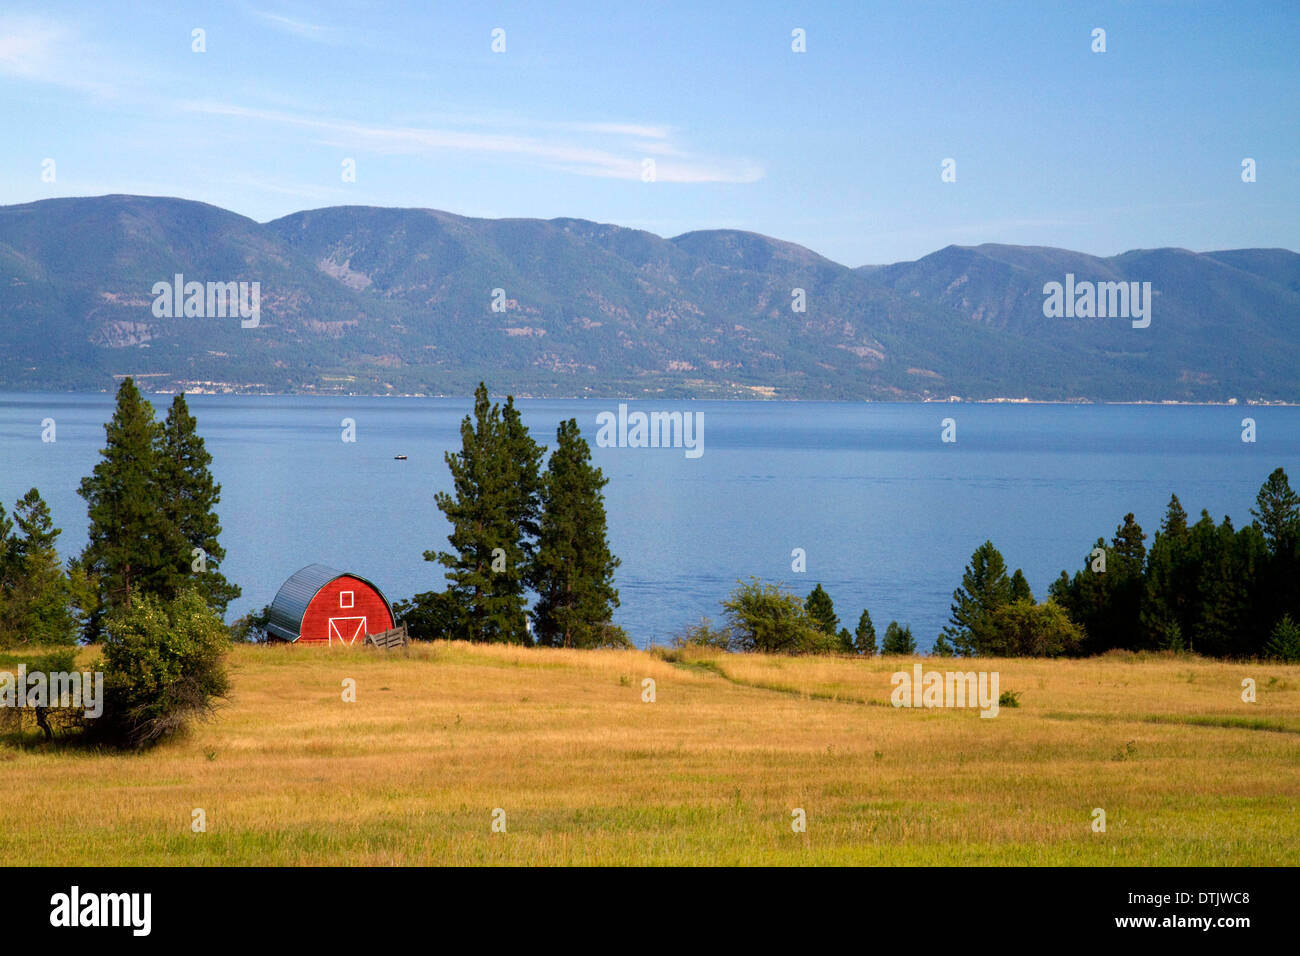 Red barn and farmland along Flathead Lake, Montana, USA. - Stock Image